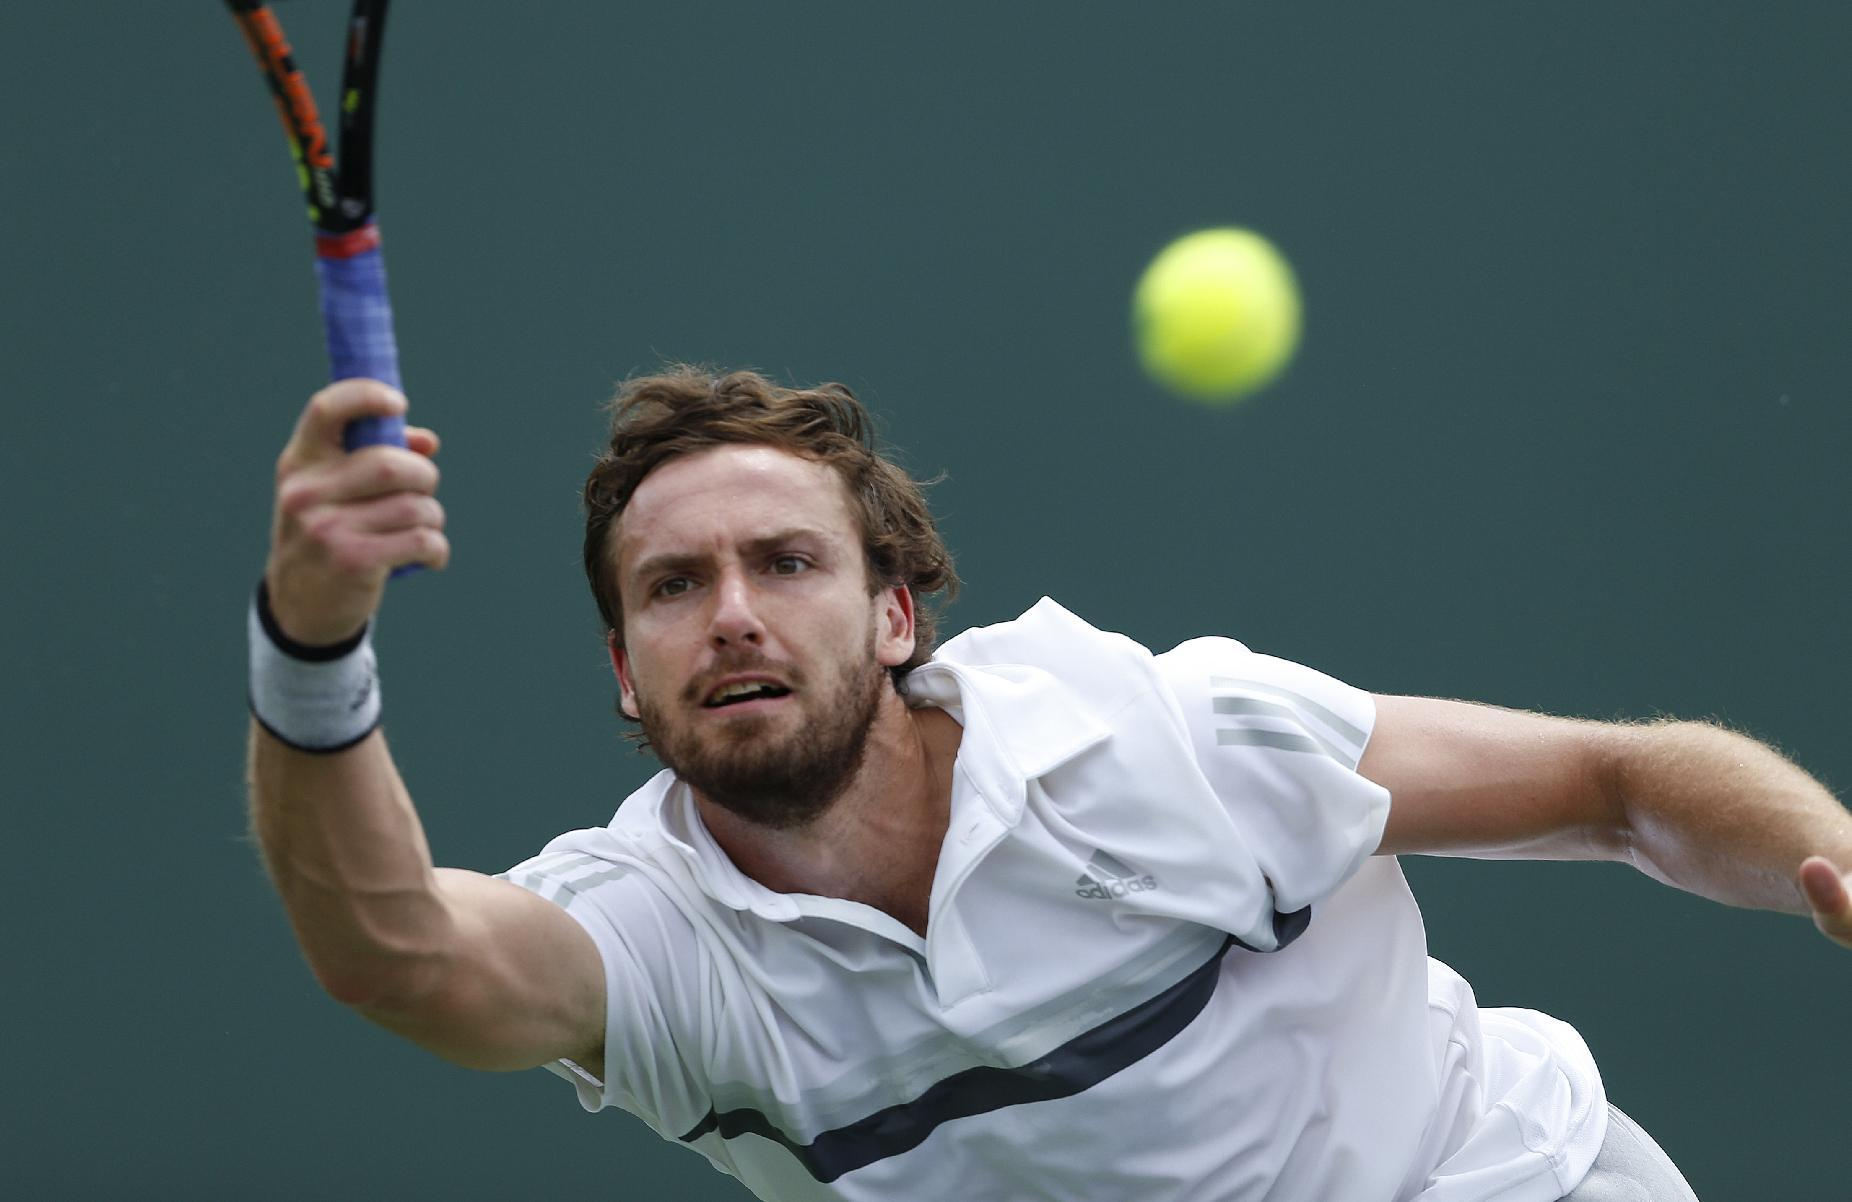 Ernests Gulbis loses in 1st round at Monte Carlo Masters